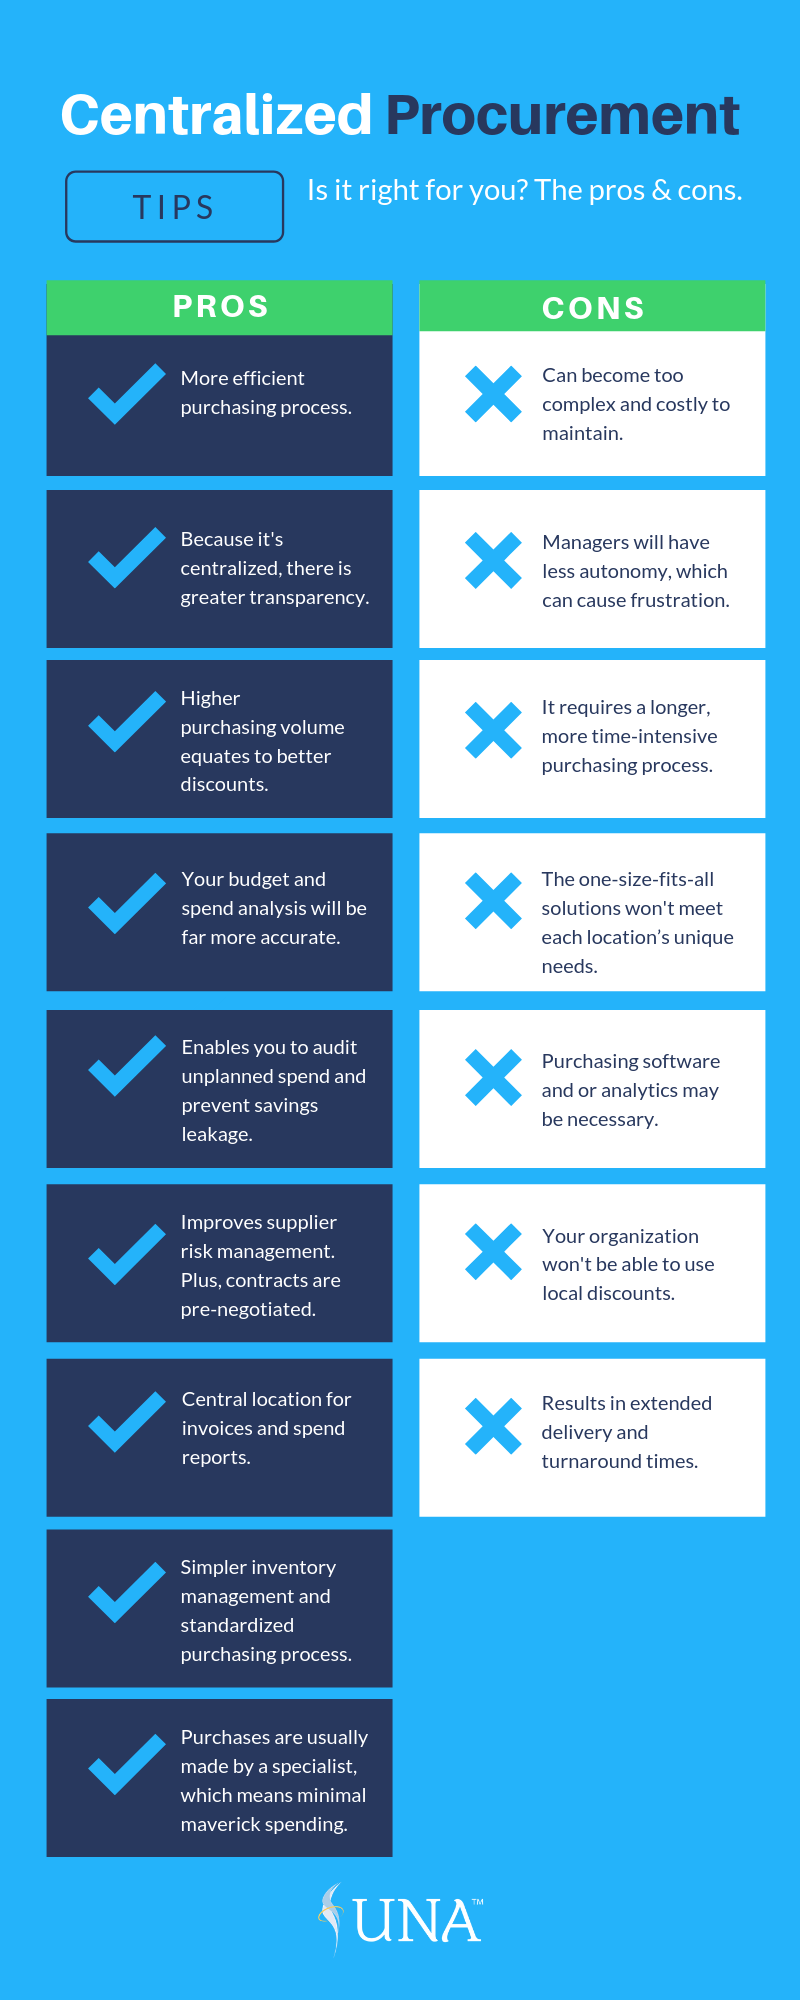 A Quick Guide to the Pros & Cons of Centralized Procurement_Infographic.